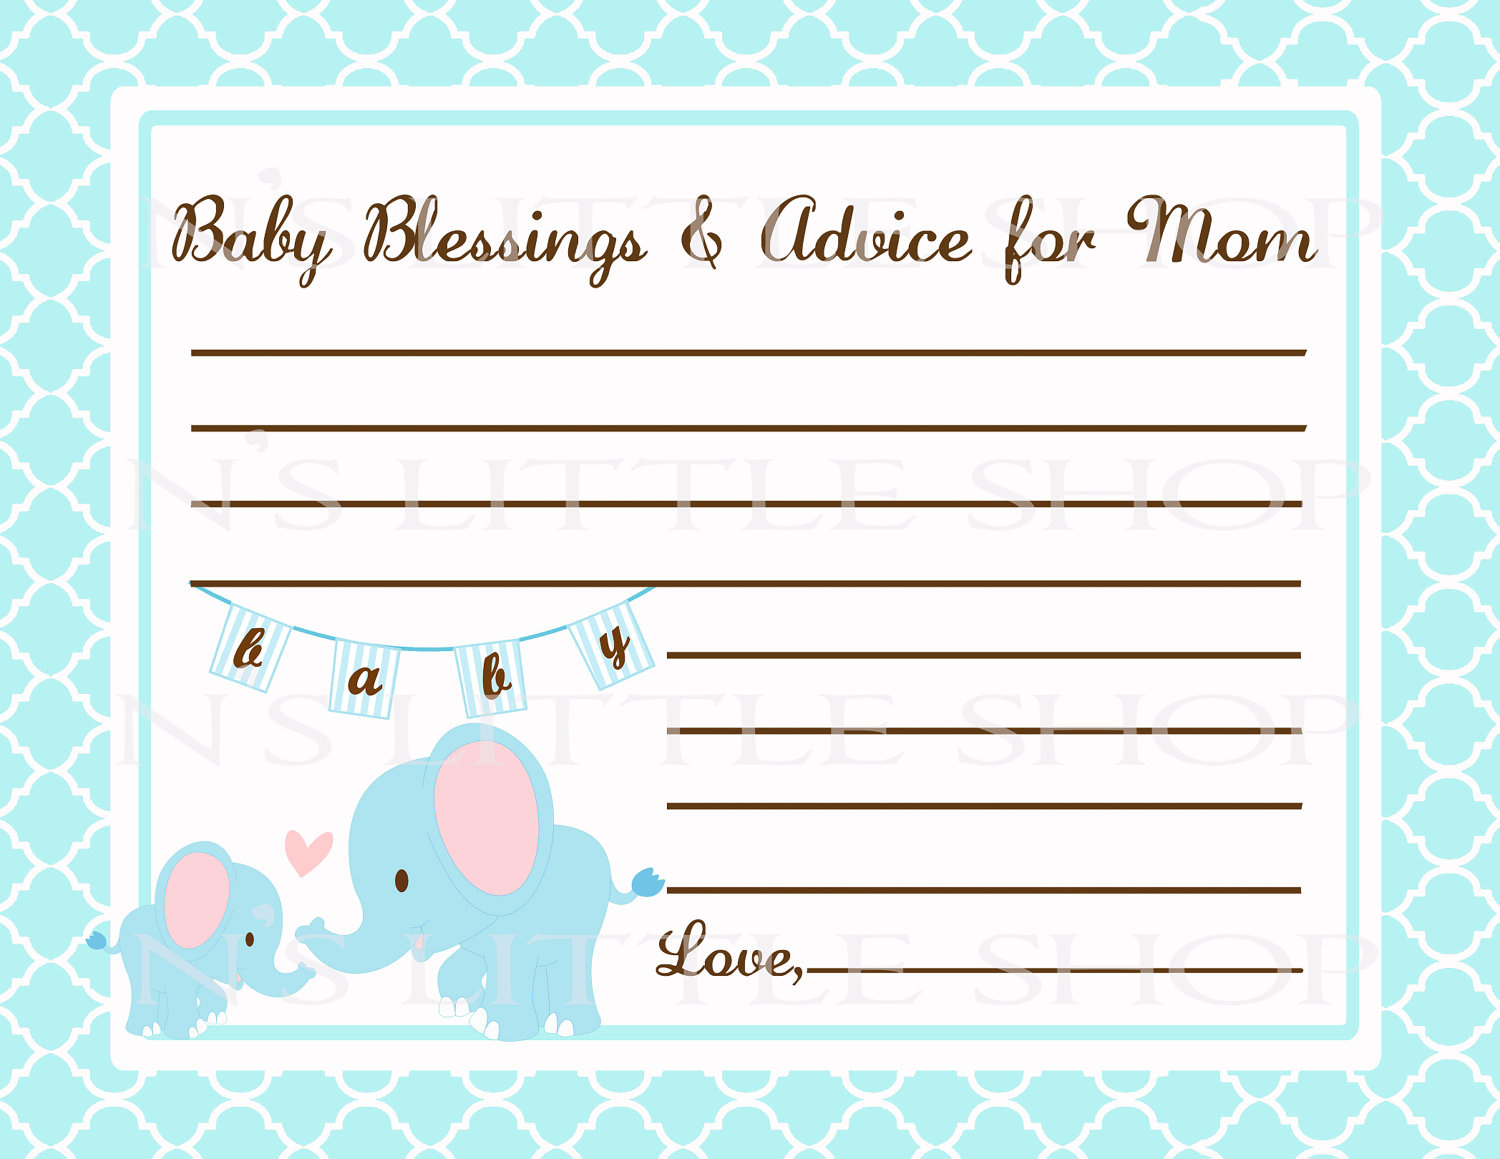 Editable Free Printable Baby Registry Cards To Baby Shower Welcome - Free Printable Baby Registry Cards